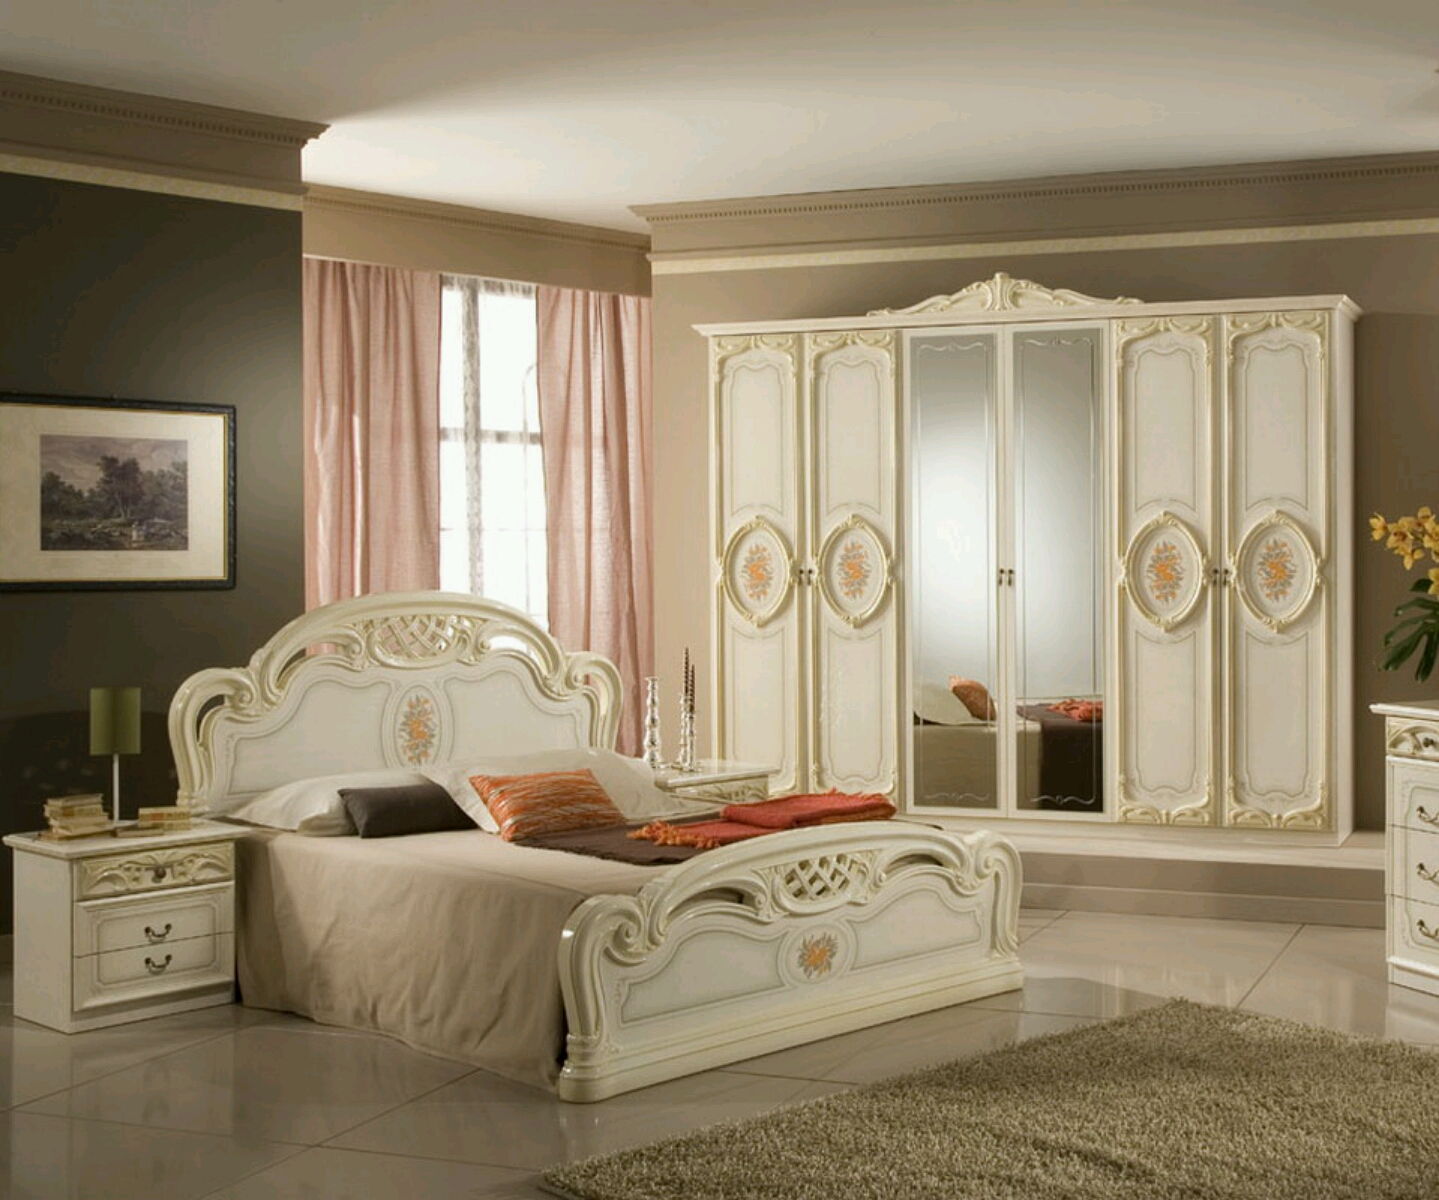 Modern luxury bedroom furniture designs ideas vintage romantic home - Furnitur design ...